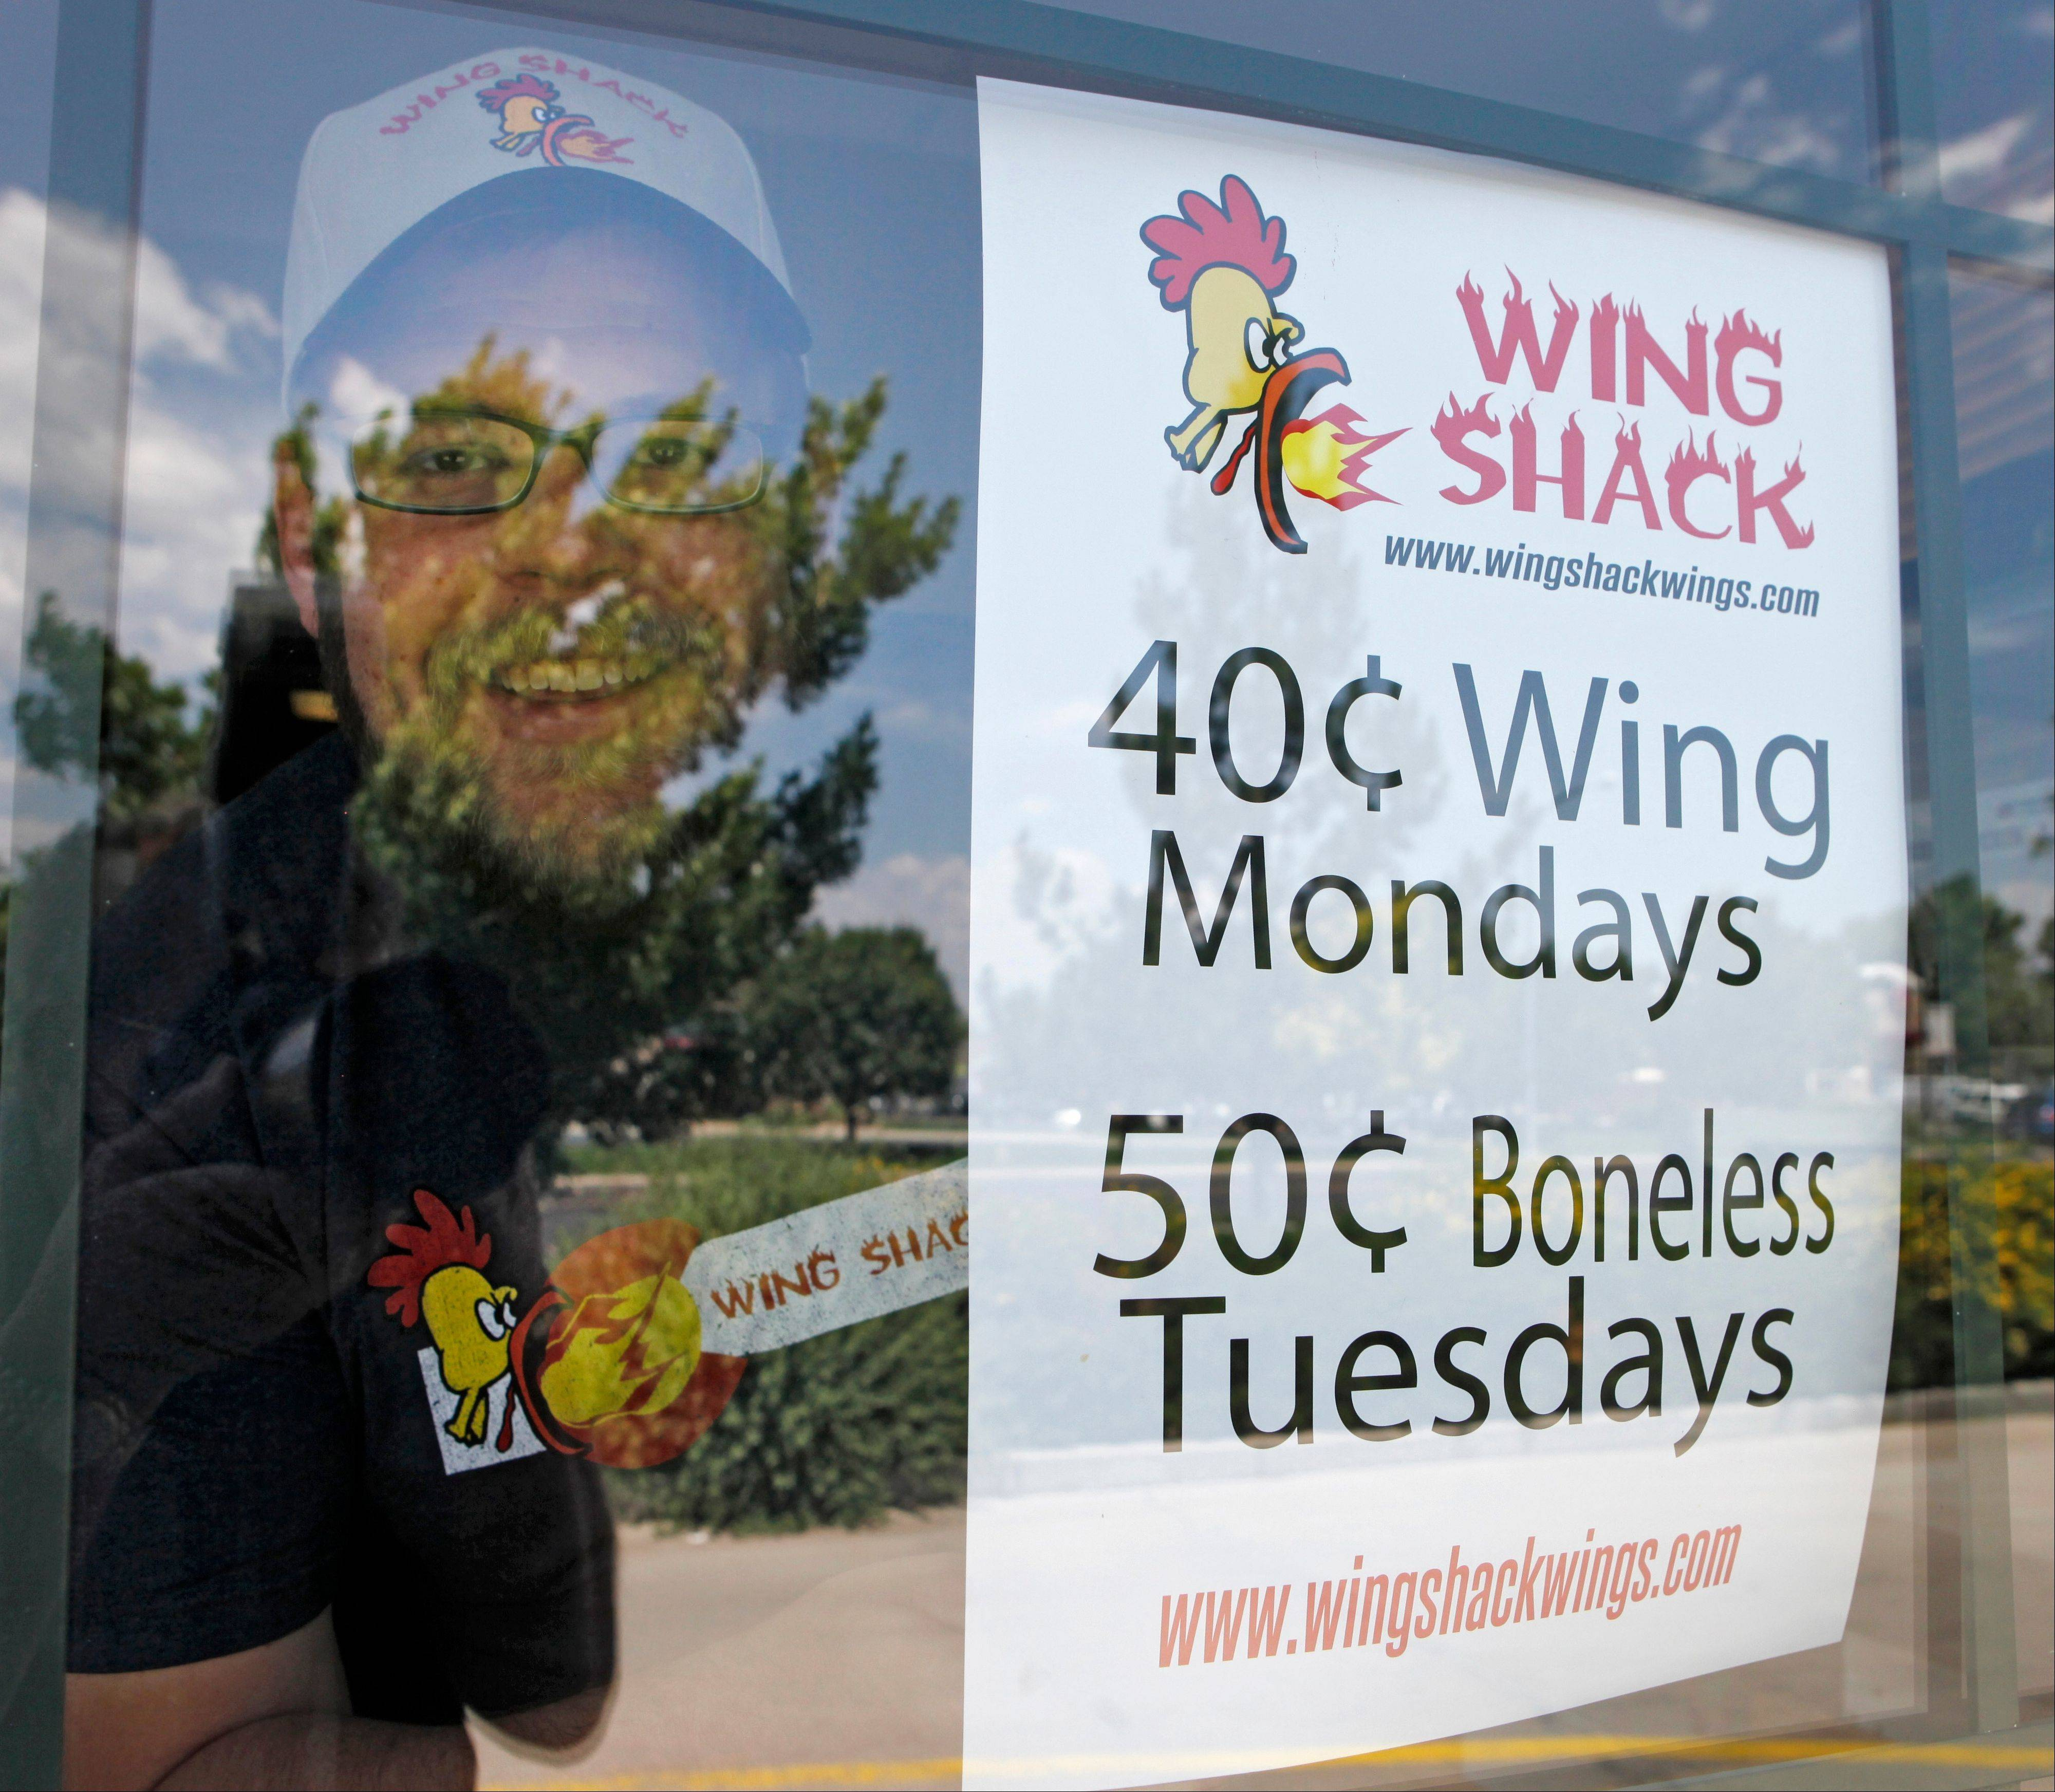 Brian Seifried, owner of the Wing Shack, stands next to a sign advertising special prices at his new restaurant in Windsor, Colo. Seifried was just 20 when he opened a hole-in-the wall chicken wing shack eight years ago in Greeley. He expanded during the recession and in June 2012, opened his fourth place in a 30-mile range. �There were times when I was self-conscious talking to neighbors and fellow business owners,� he says. �I kind of played down our success just not to come across as bragging.� Politically, Seifried says he agrees with the president�s position that the top 1 percent should contribute more taxes, but �I don�t feel the federal government is efficient with the money that they do bring in. ... I�m only 28. In consider myself socially liberal �, but I don�t think Democrat or Republican is the answer.� (AP Photo/Ed Andrieski)